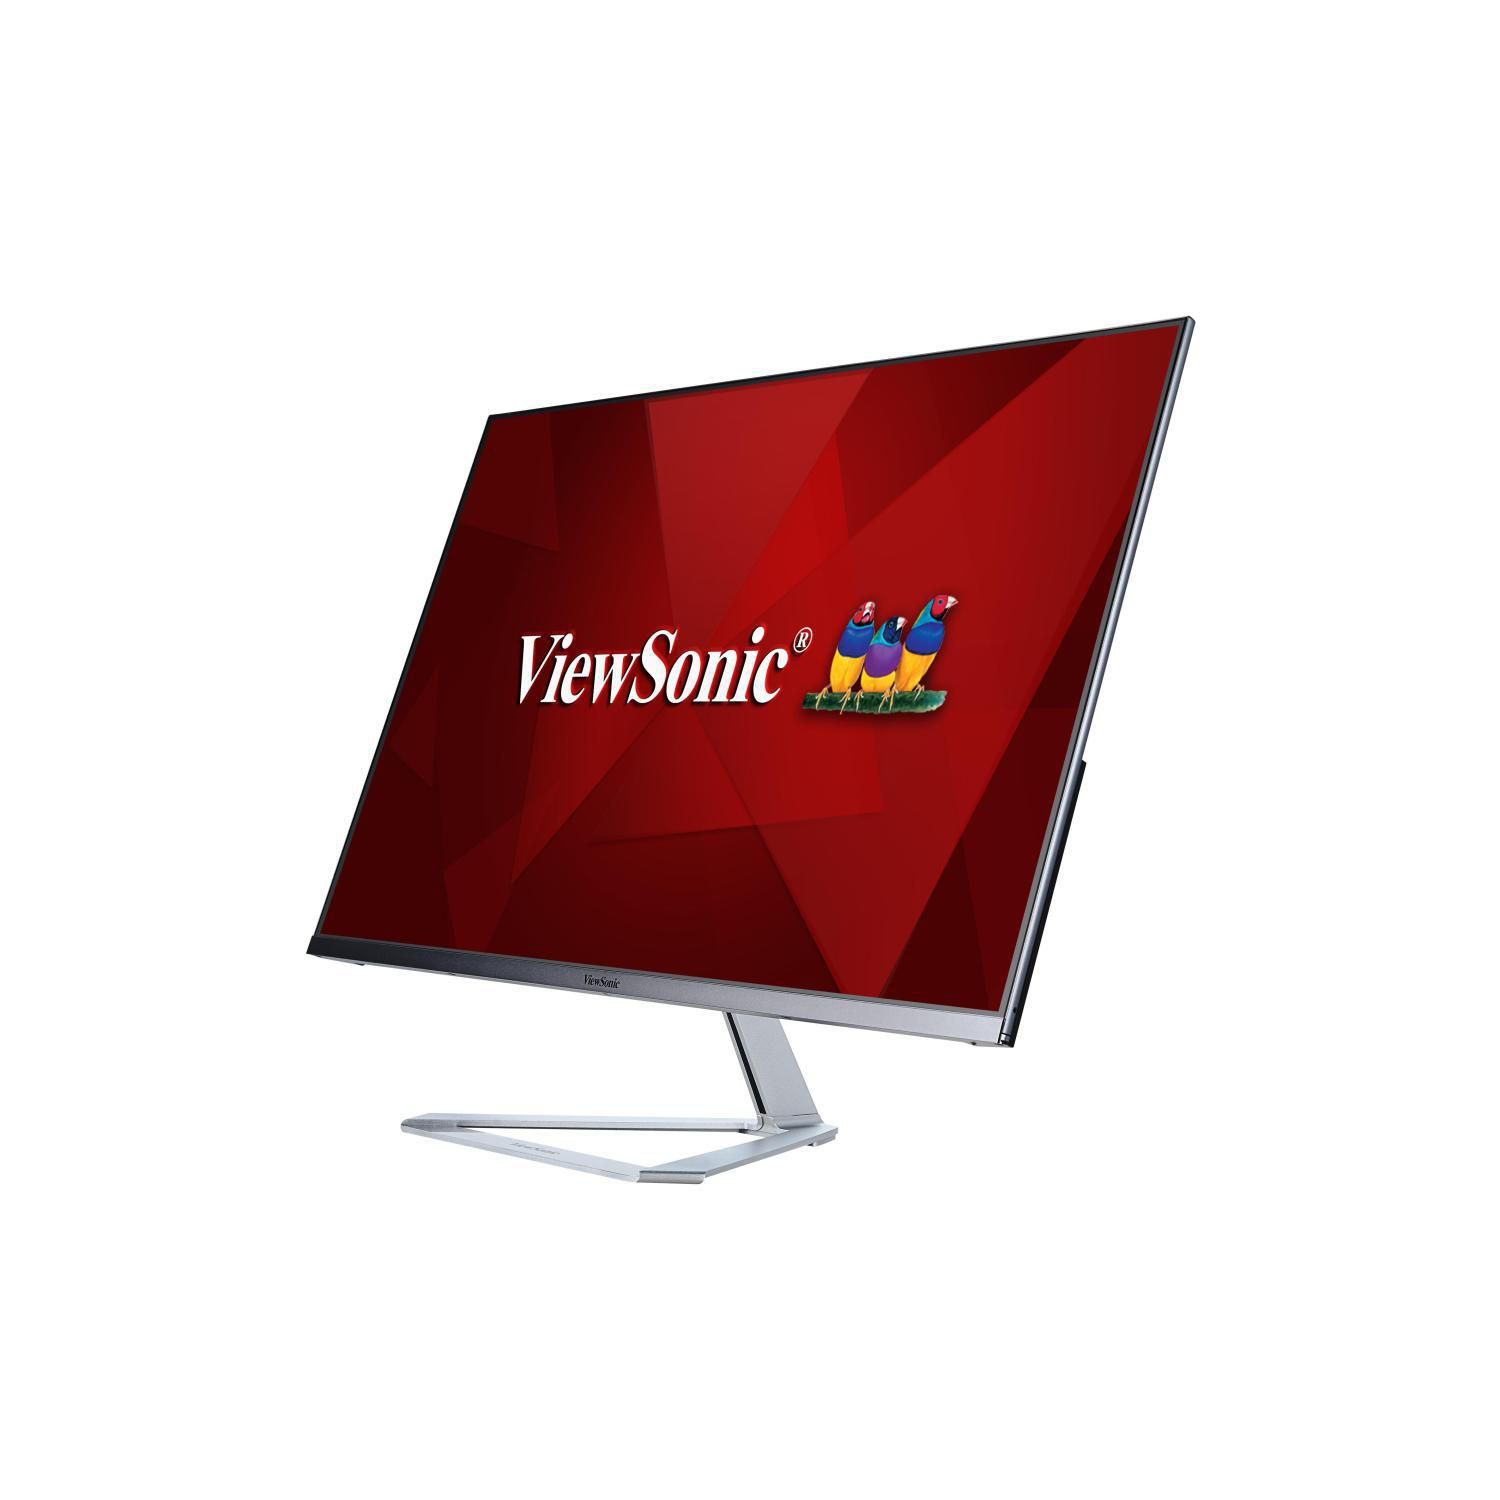 ViewSonic VX3276-MHD 32-inch 1080p Frameless Widescreen IPS Monitor with Screen Split Capability HDMI and DisplayPort